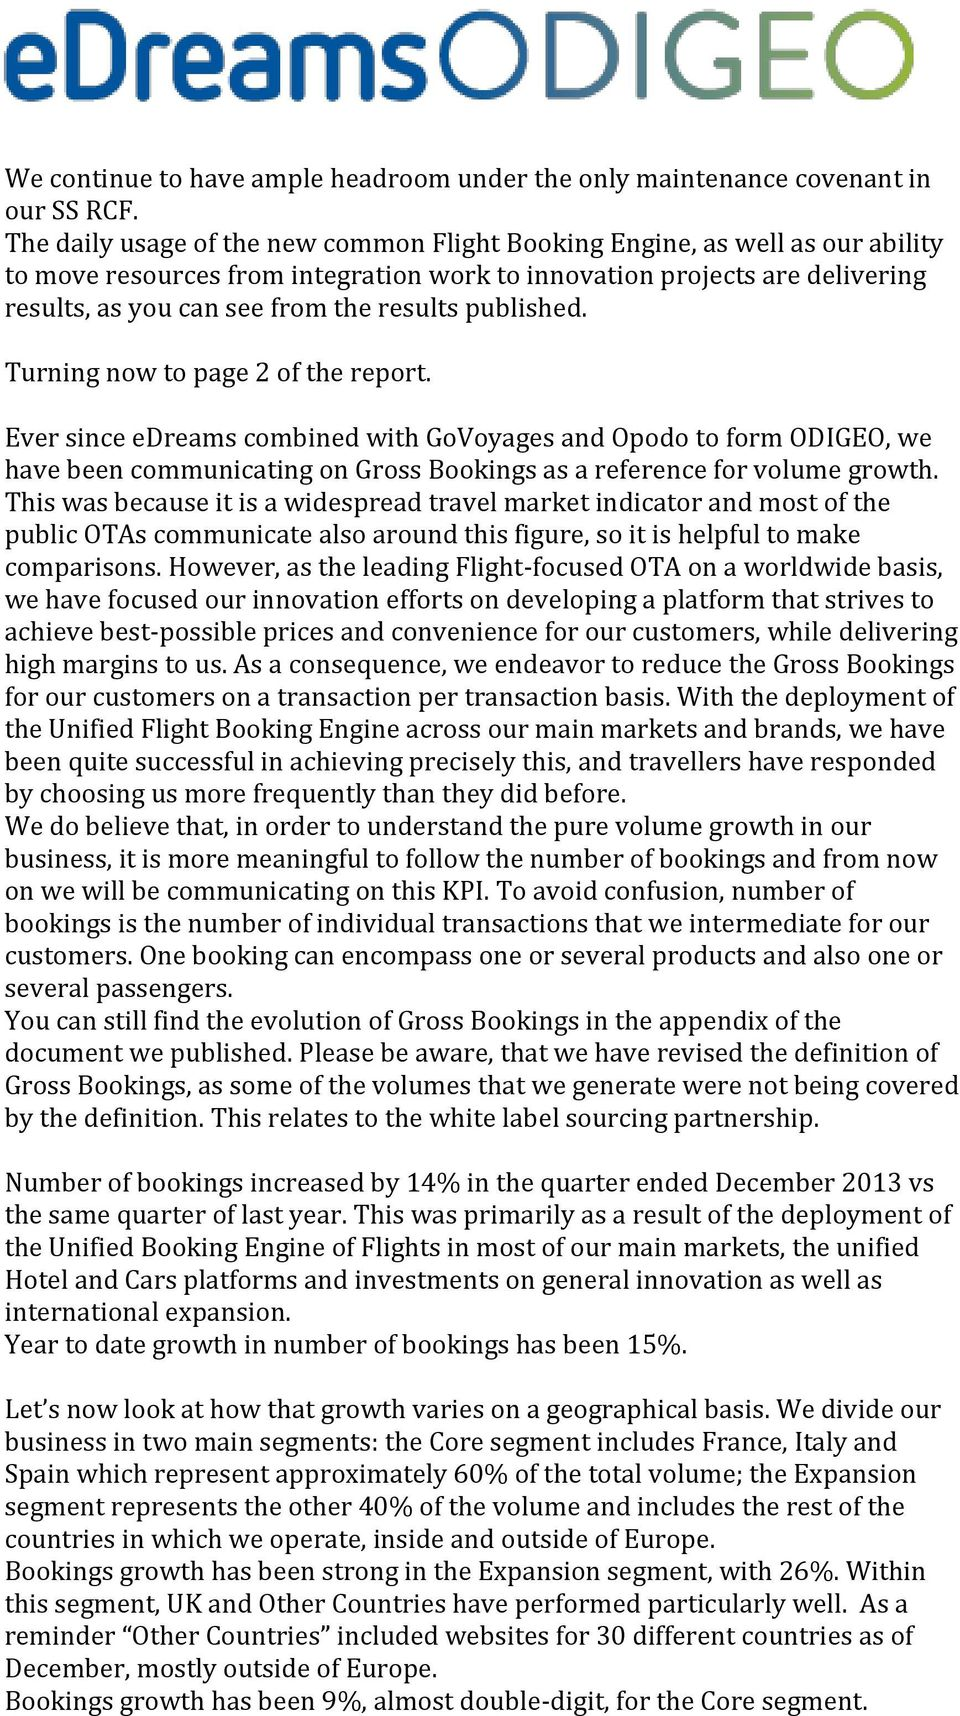 published. Turning now to page 2 of the report. Ever since edreams combined with GoVoyages and Opodo to form ODIGEO, we have been communicating on Gross Bookings as a reference for volume growth.